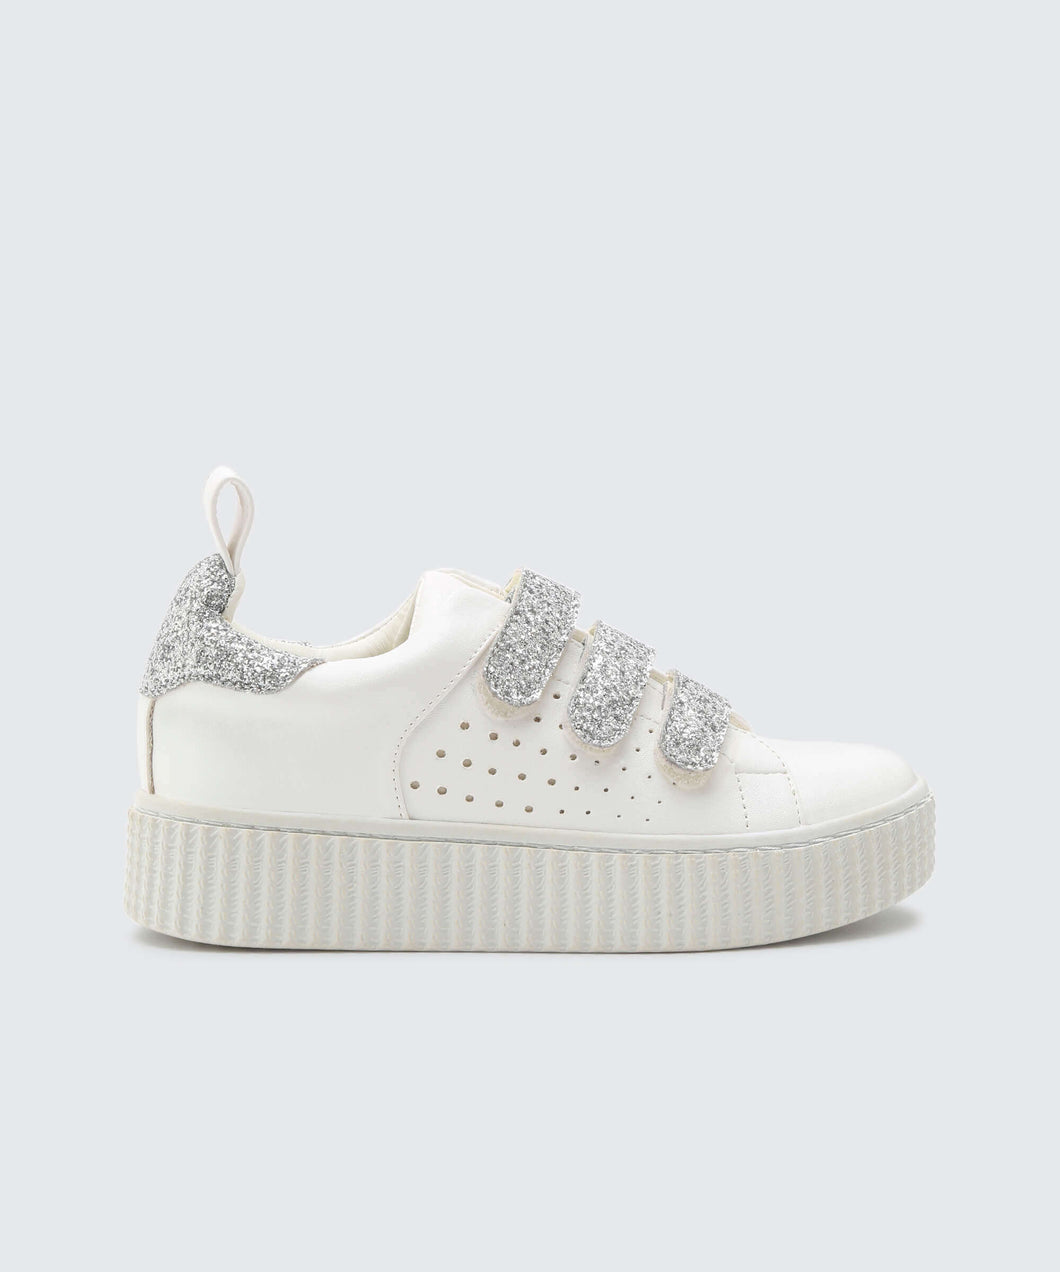 CAELIN SNEAKERS IN WHITE -   Dolce Vita